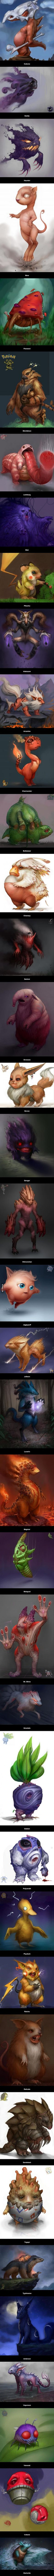 If Pokemon were more realistic.my ass, more like if pokemon were from a horror show, geeeez Pokemon Fusion, Pokemon Fan, Best Funny Pictures, Cool Pictures, Pokemon In Real Life, Kino Film, Nintendo, Bd Comics, Video Game Art